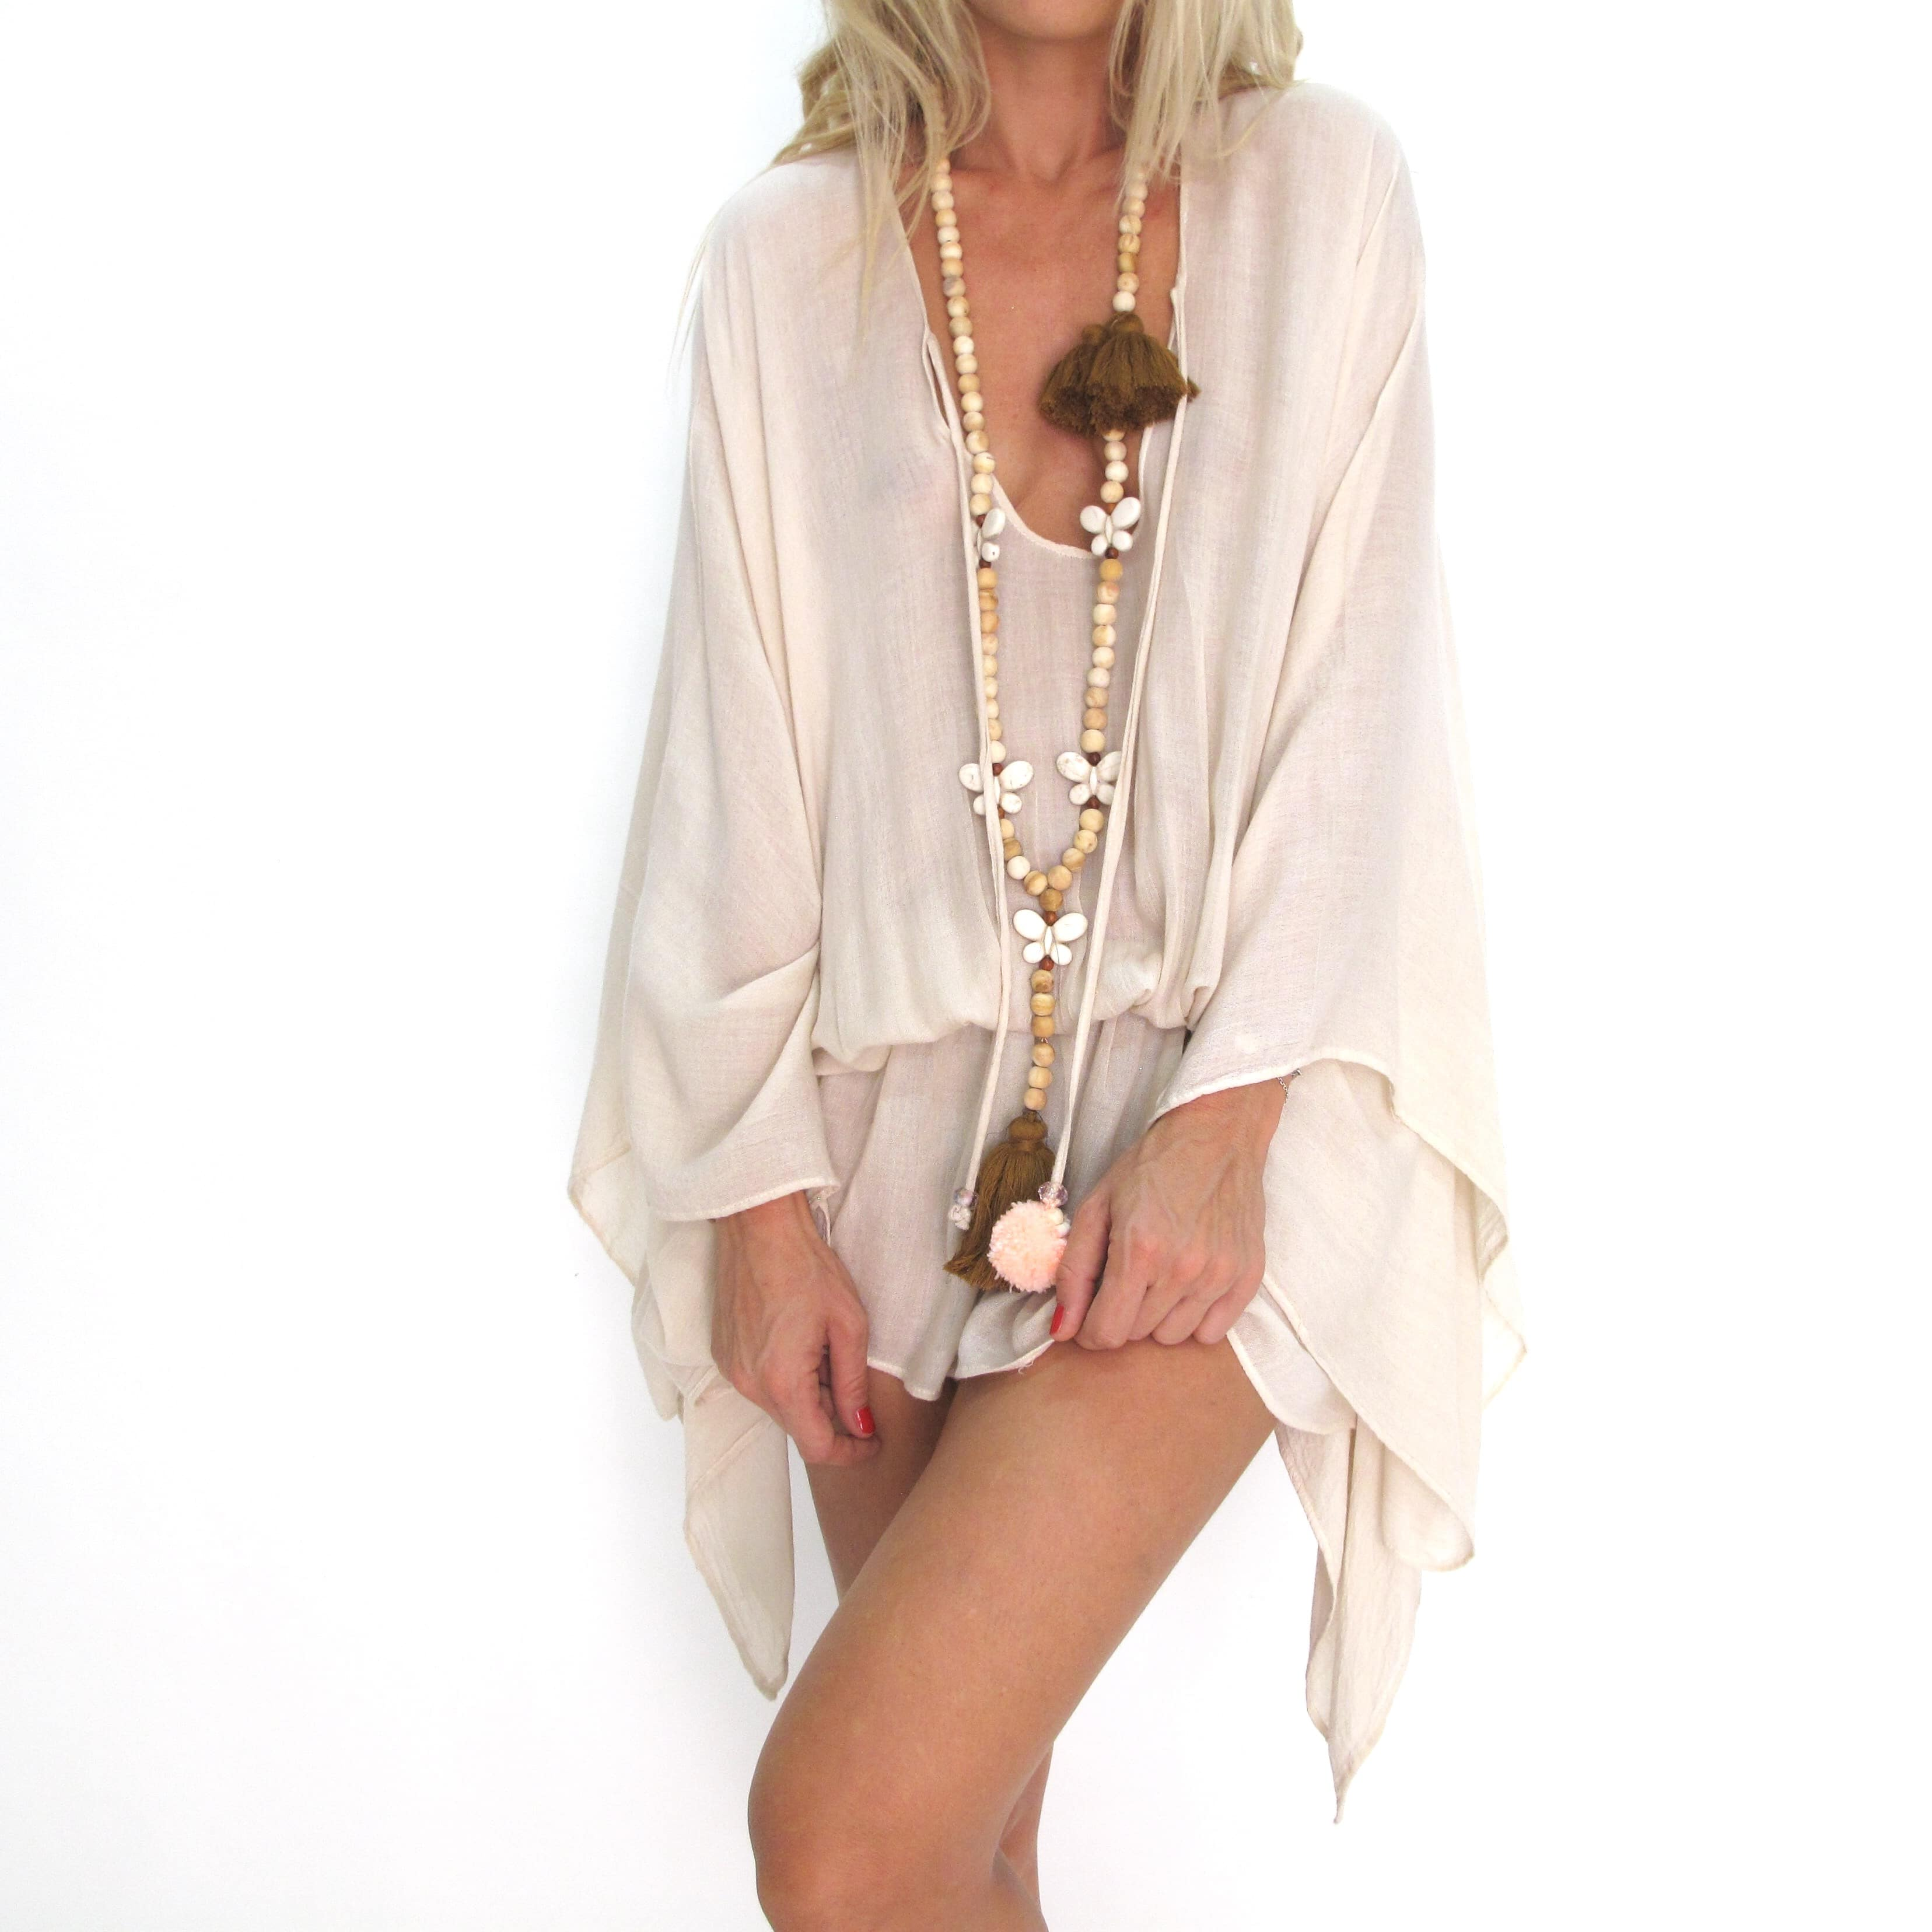 Poncho Tulum tunique boheme French fashion brand beachwear vetement boheme clothe beachwear les neobourgeoises tunique hippie chic resortwear nice resortwear cannes